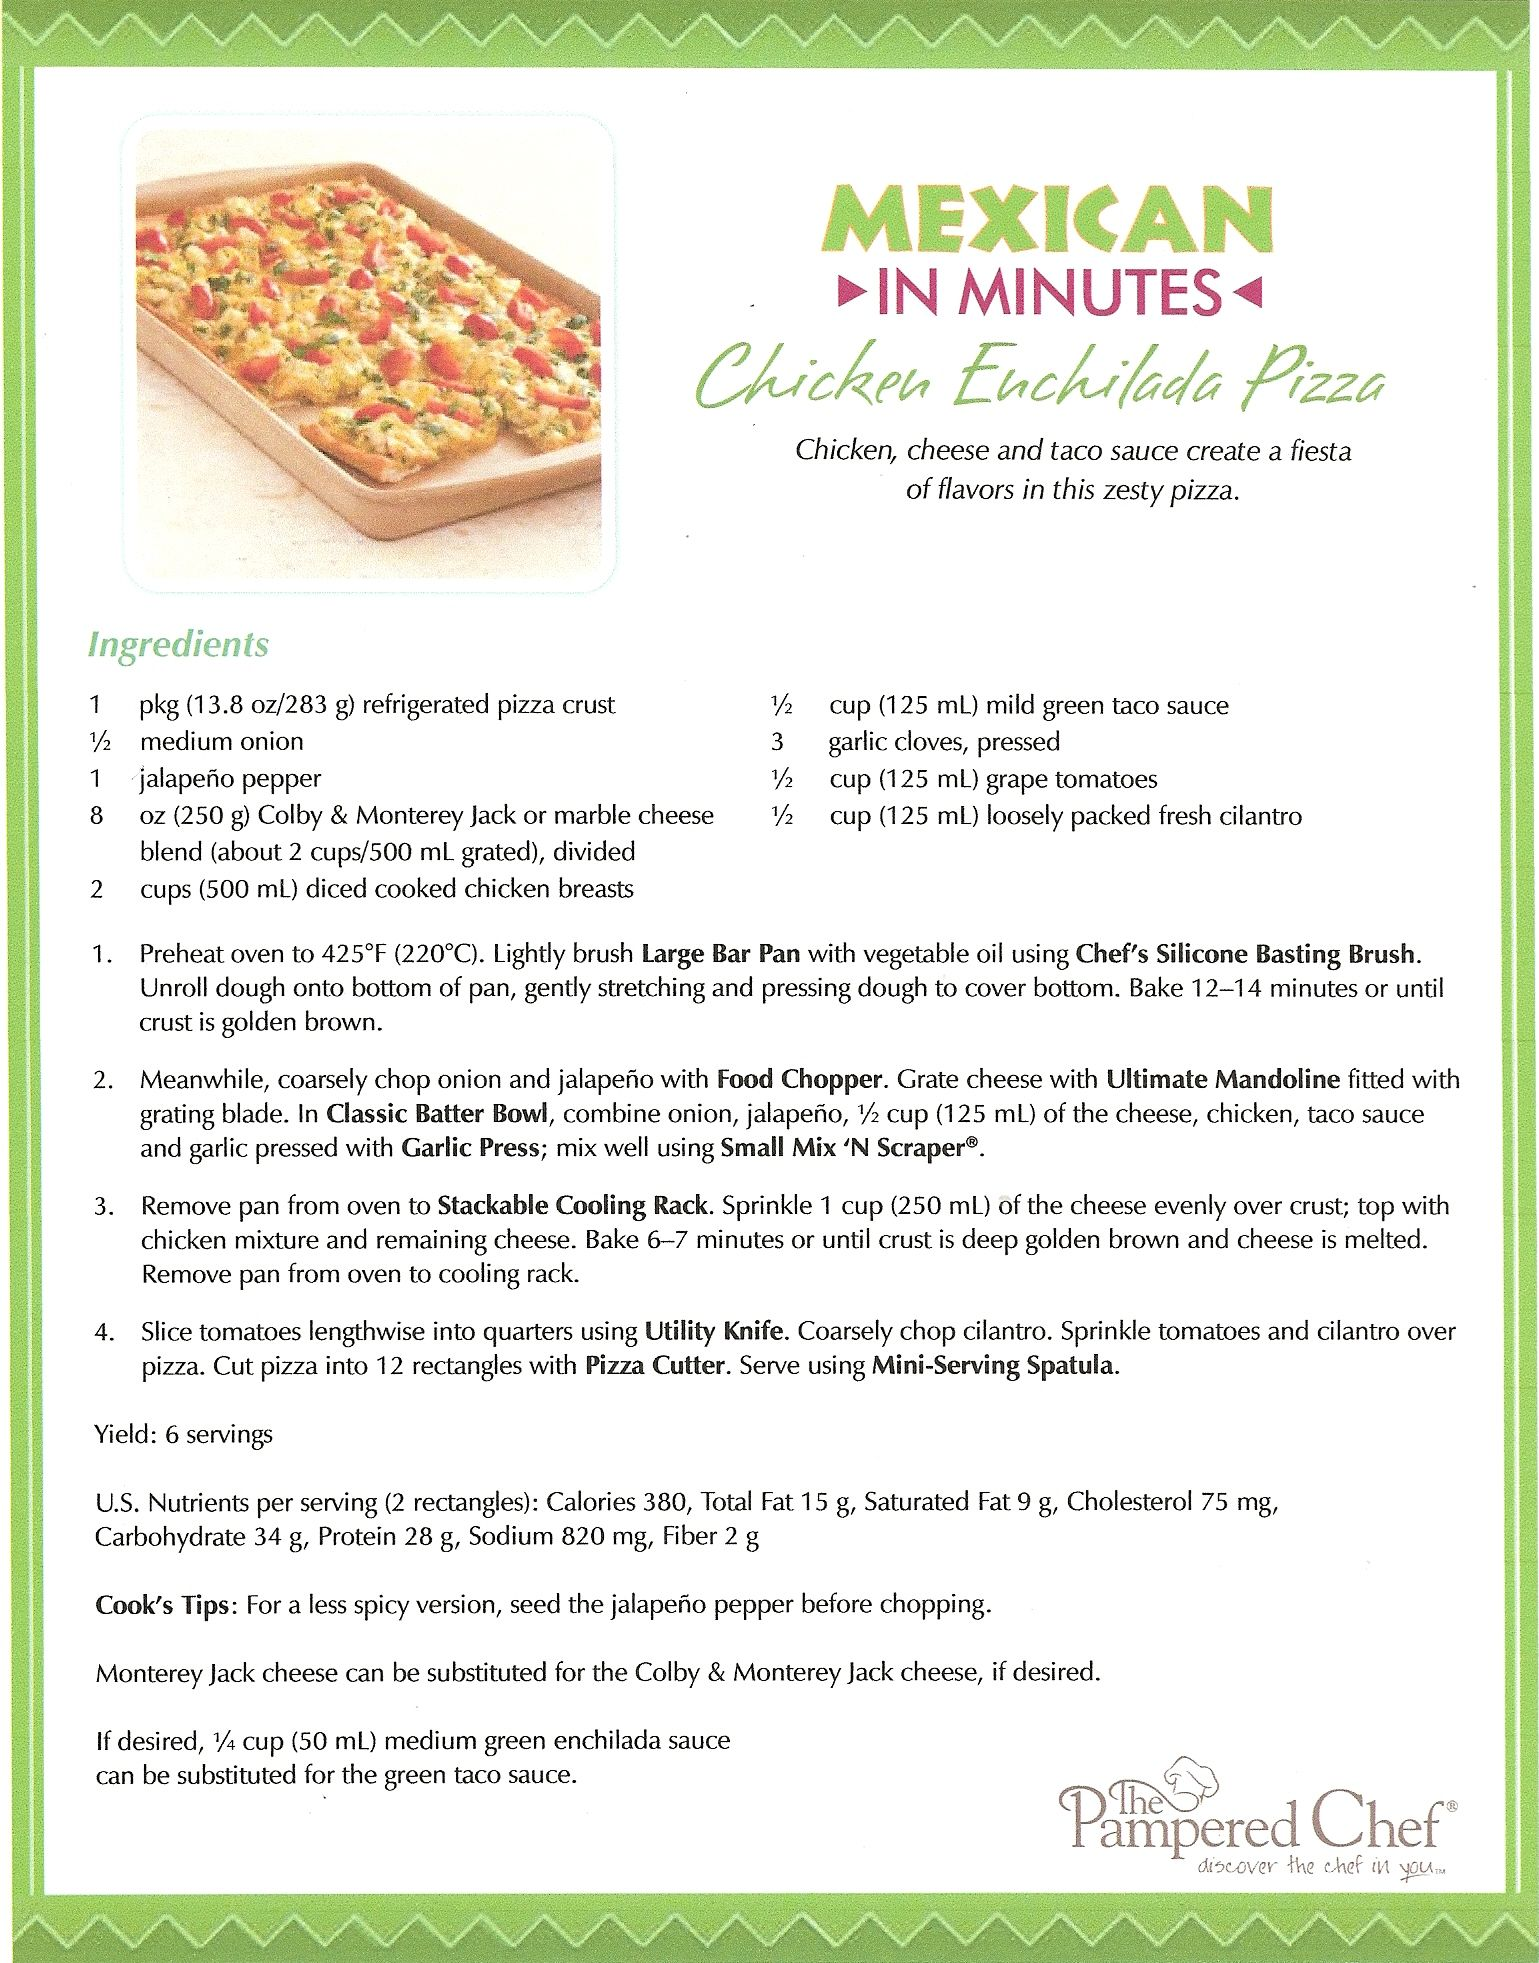 Try This Delicious Chicken Enchilada Pizza Made On The Large Bar